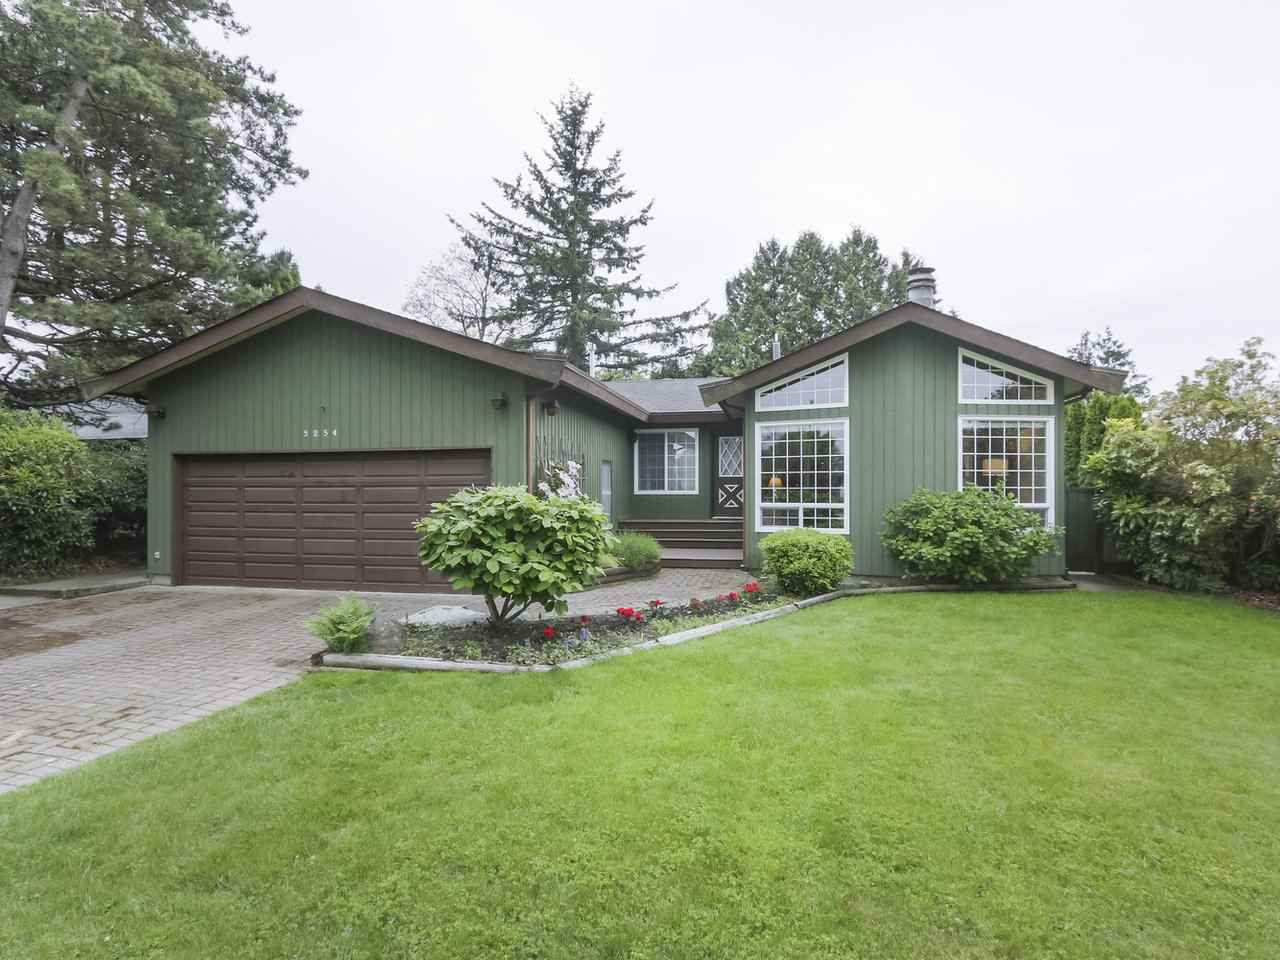 Main Photo: 5254 WALNUT Place in Delta: Hawthorne House for sale (Ladner)  : MLS®# R2372102